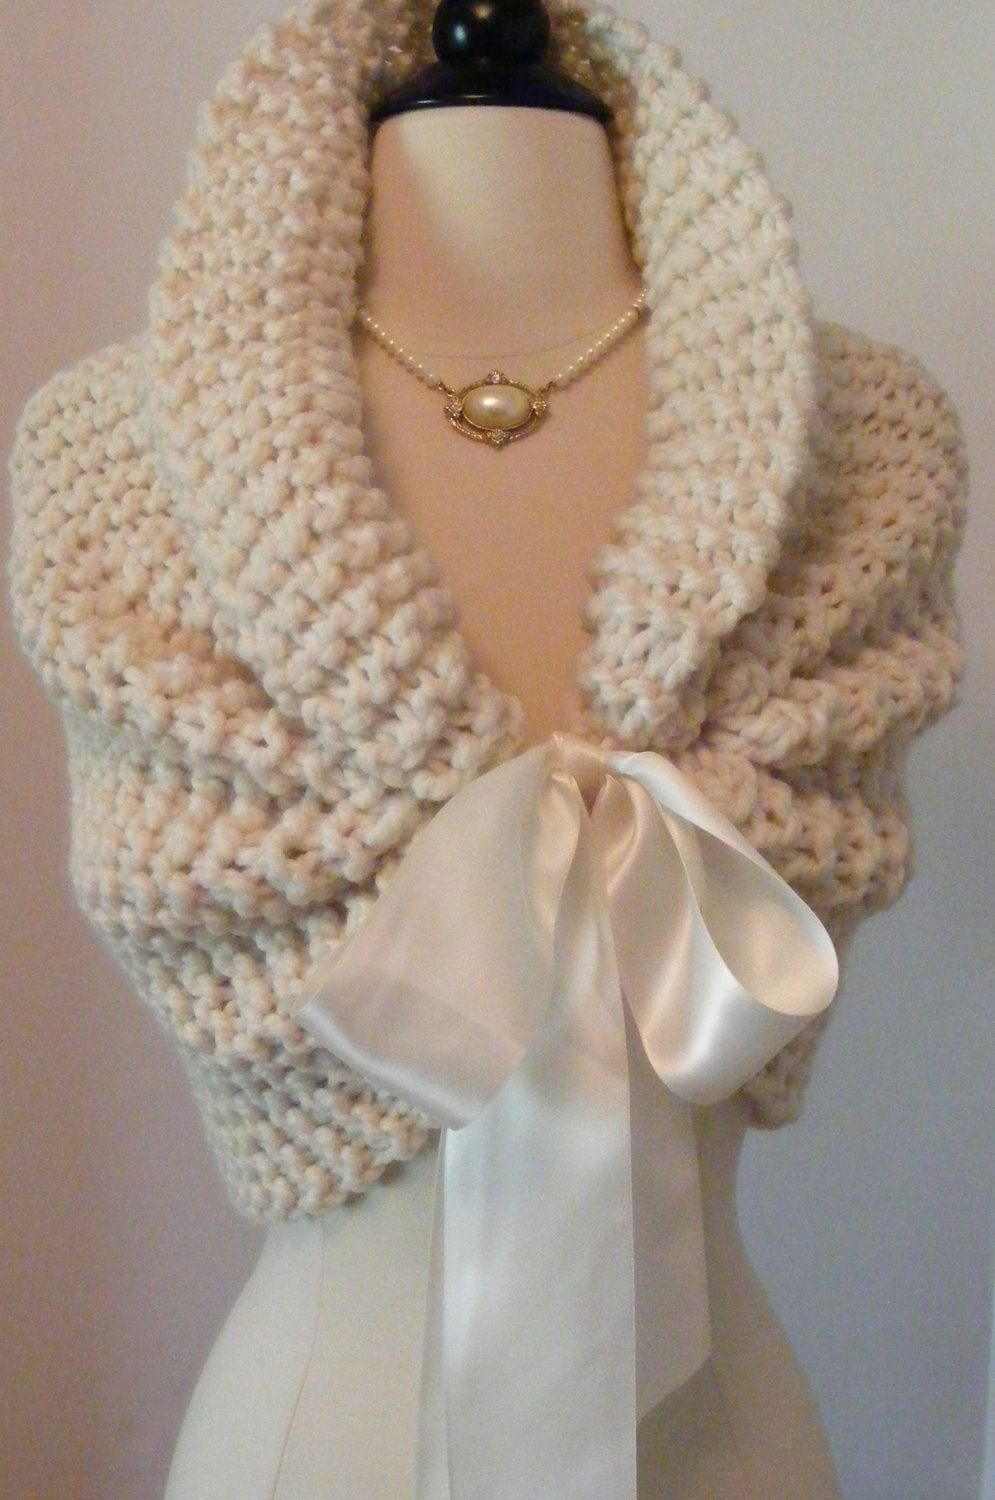 Wedding Shawl Bride Bolero Shrug Bolero Bridal